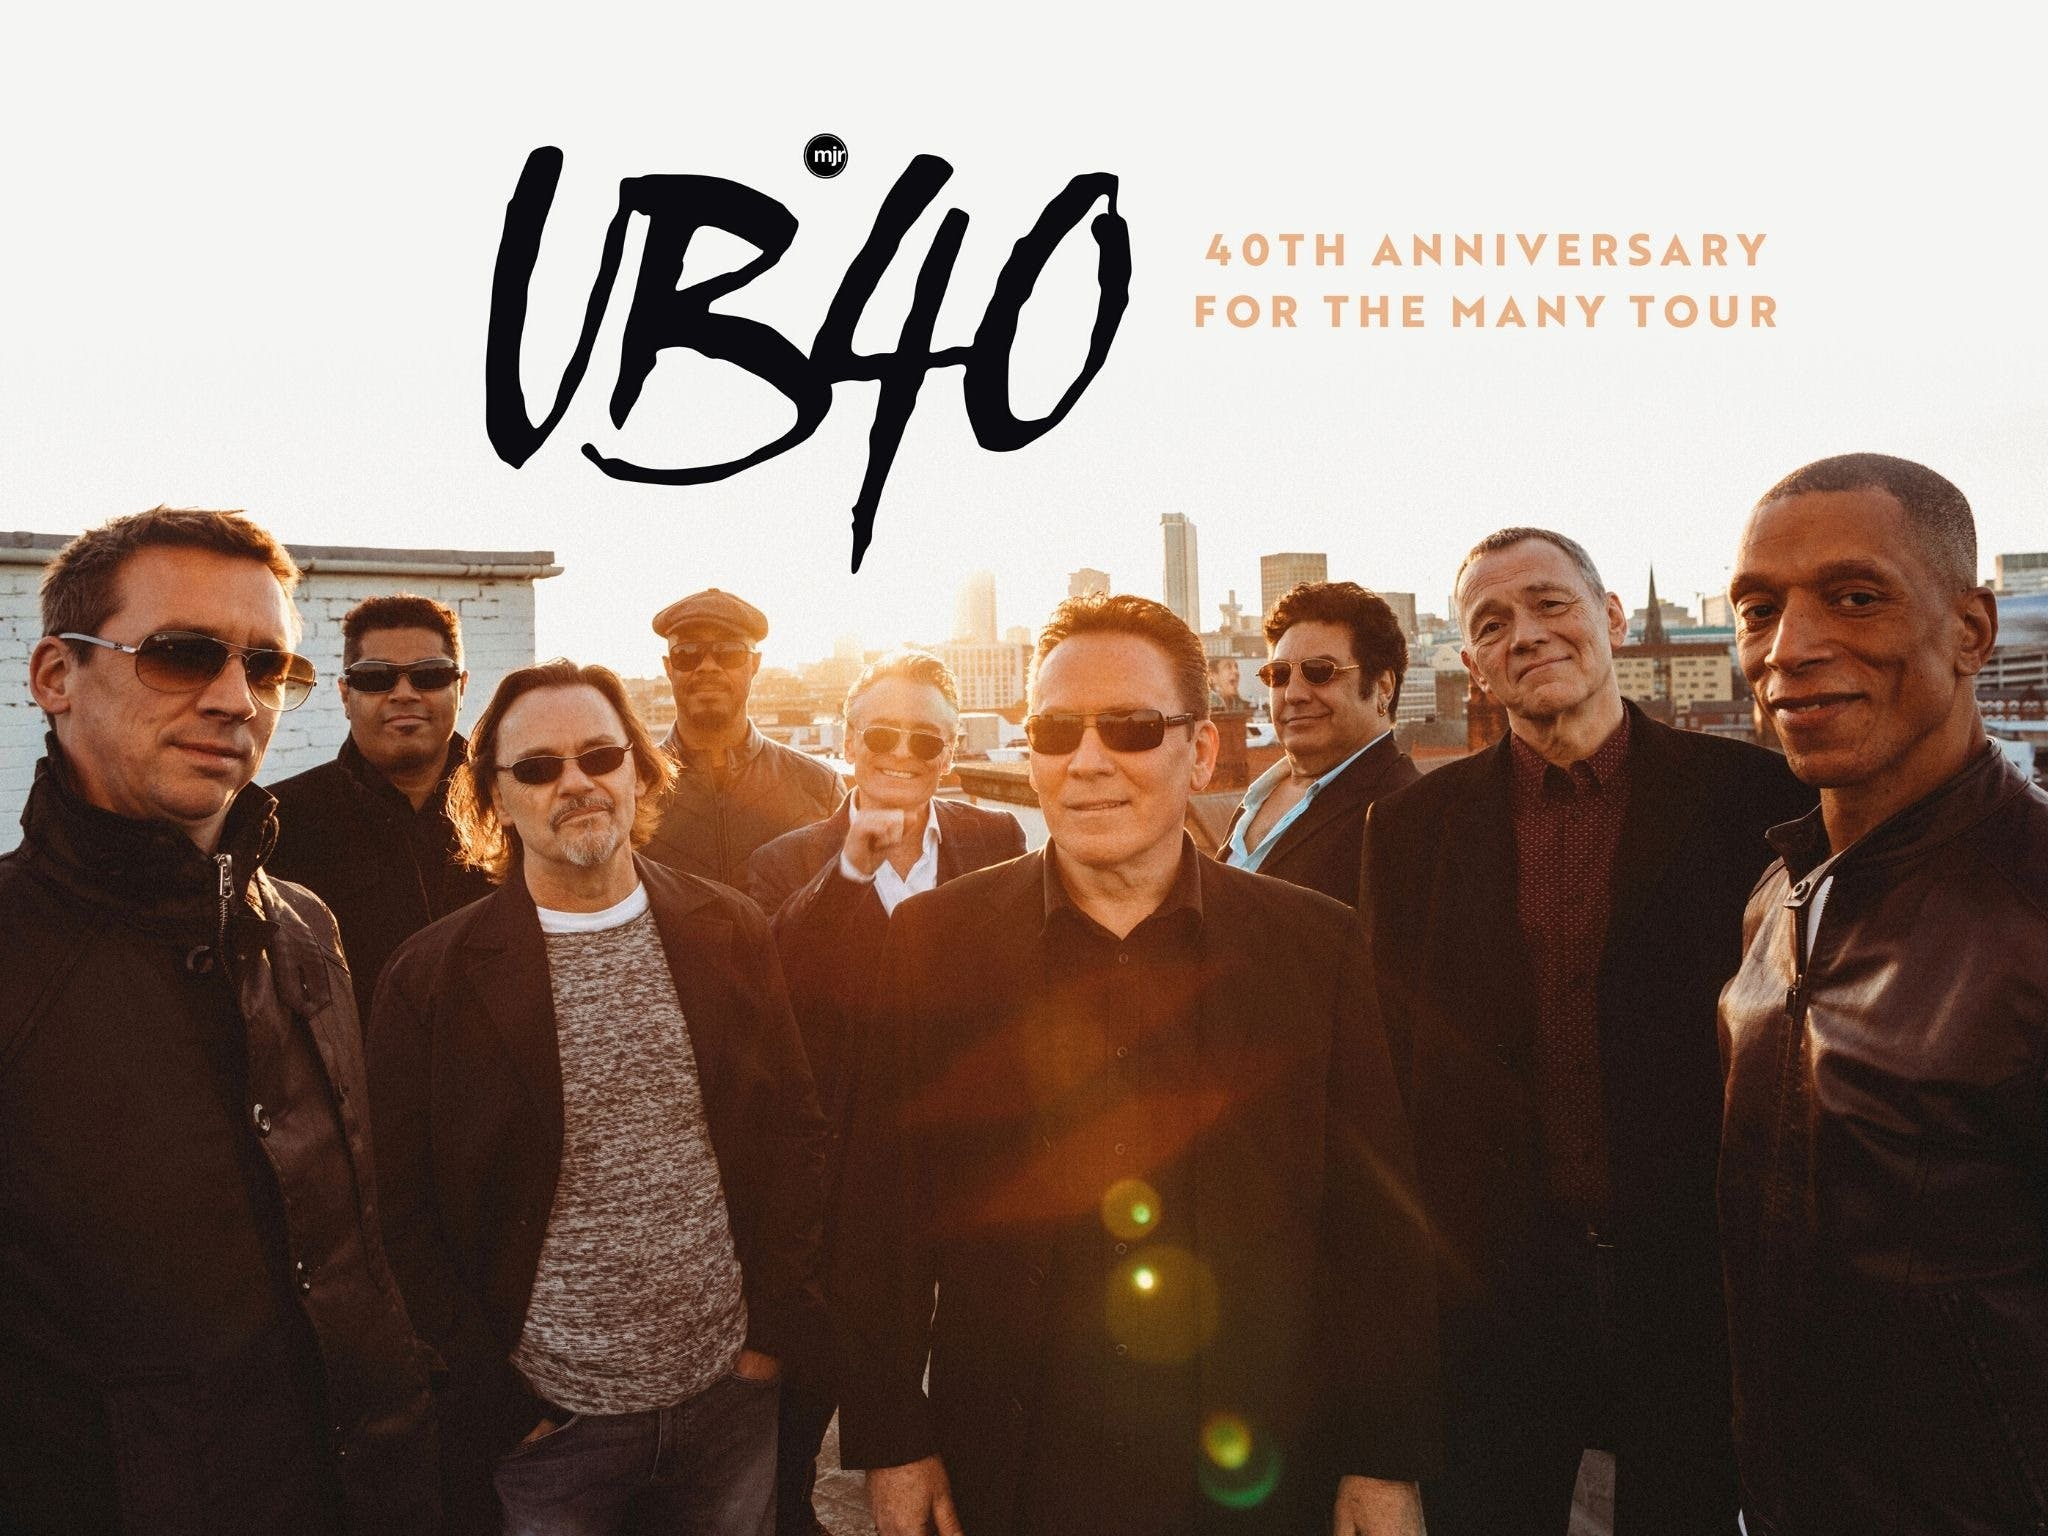 UB40 40th Anniversary Tour - Accommodation Melbourne